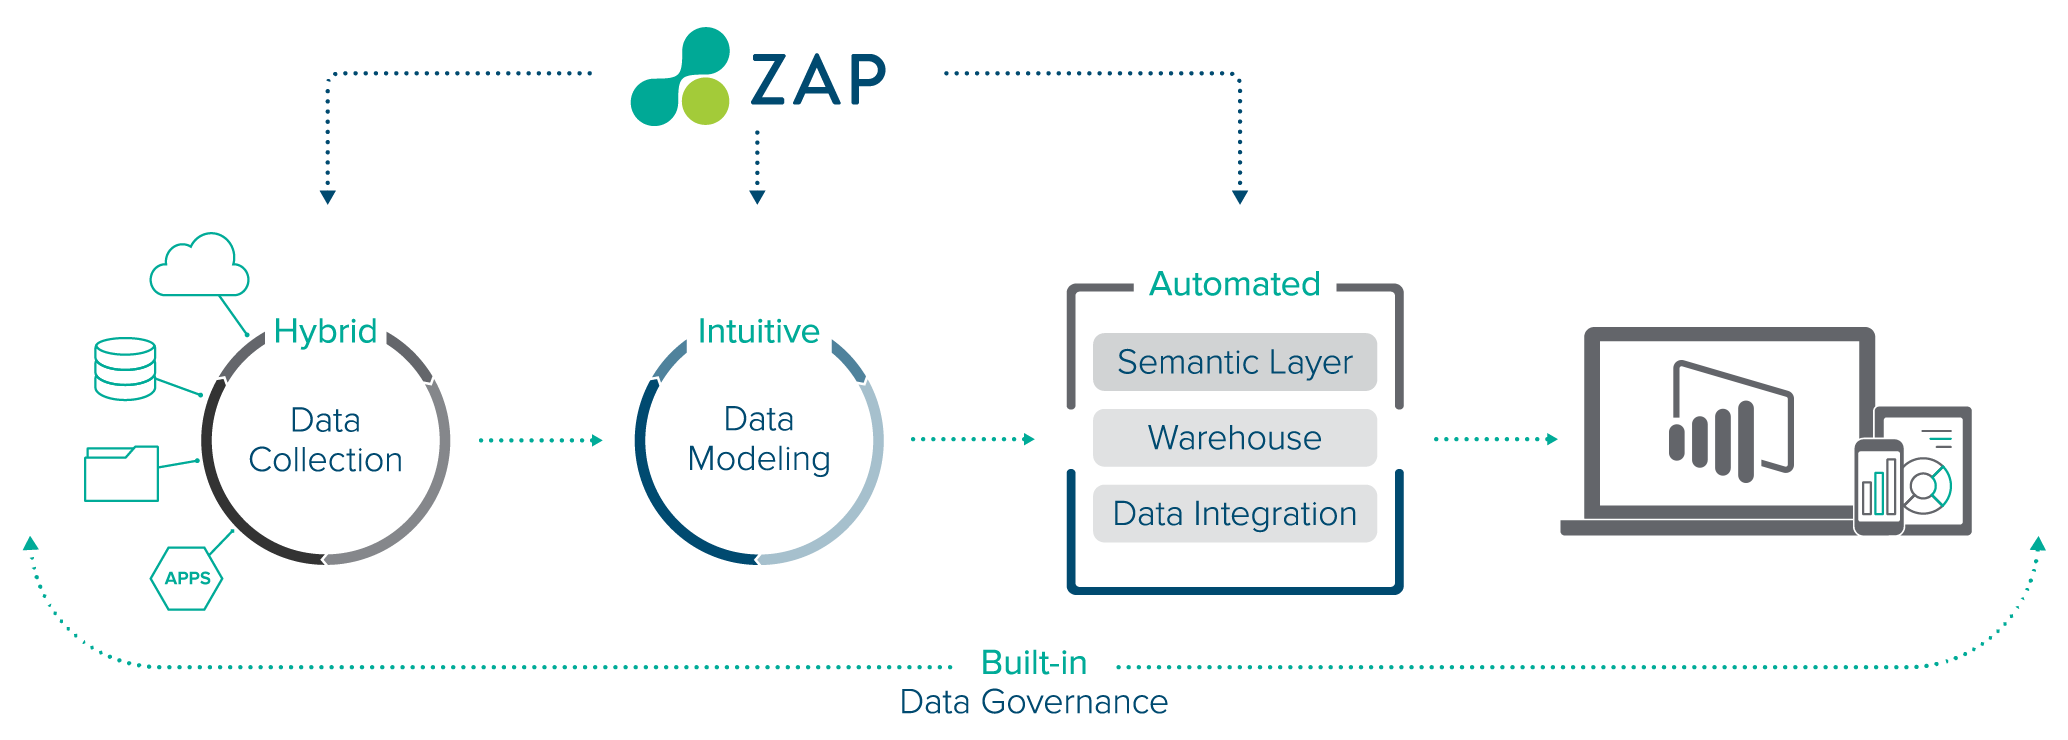 ZAP Product – Data Hub – PBI  Desktop View